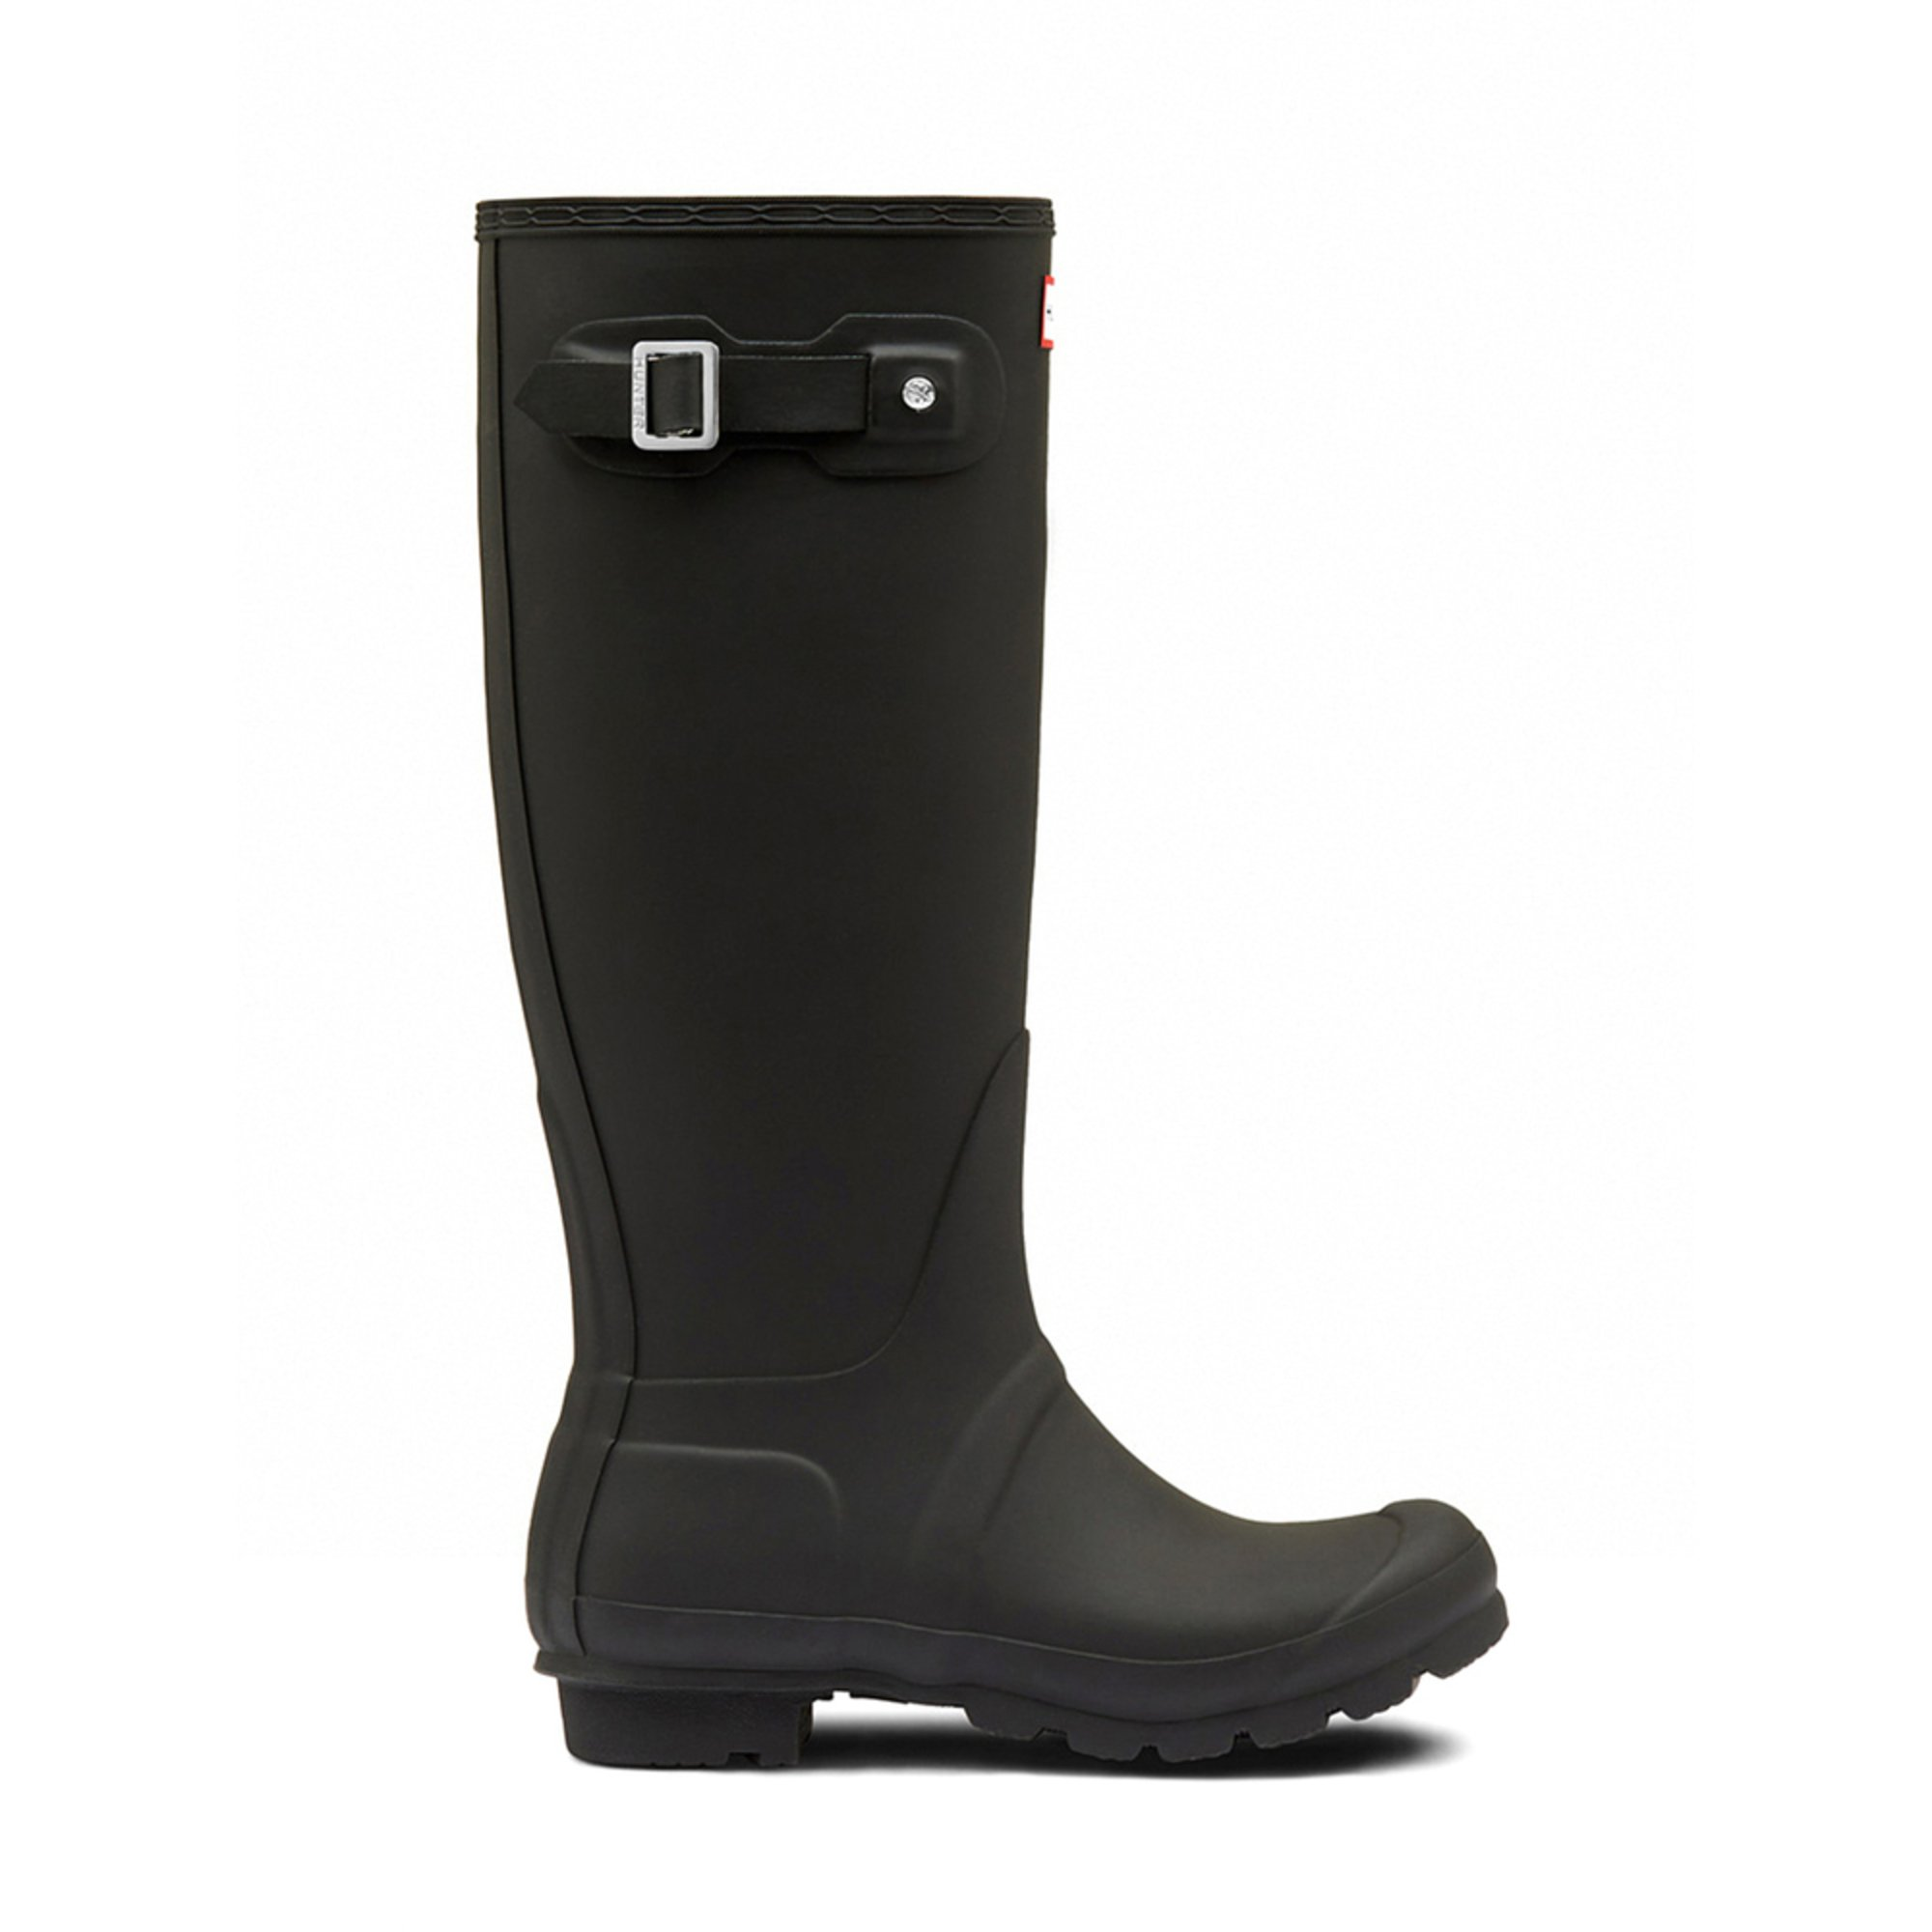 3e3a67958456 Hunter Boot. Hunter Boot Women s Original Tall Matte Rainboot